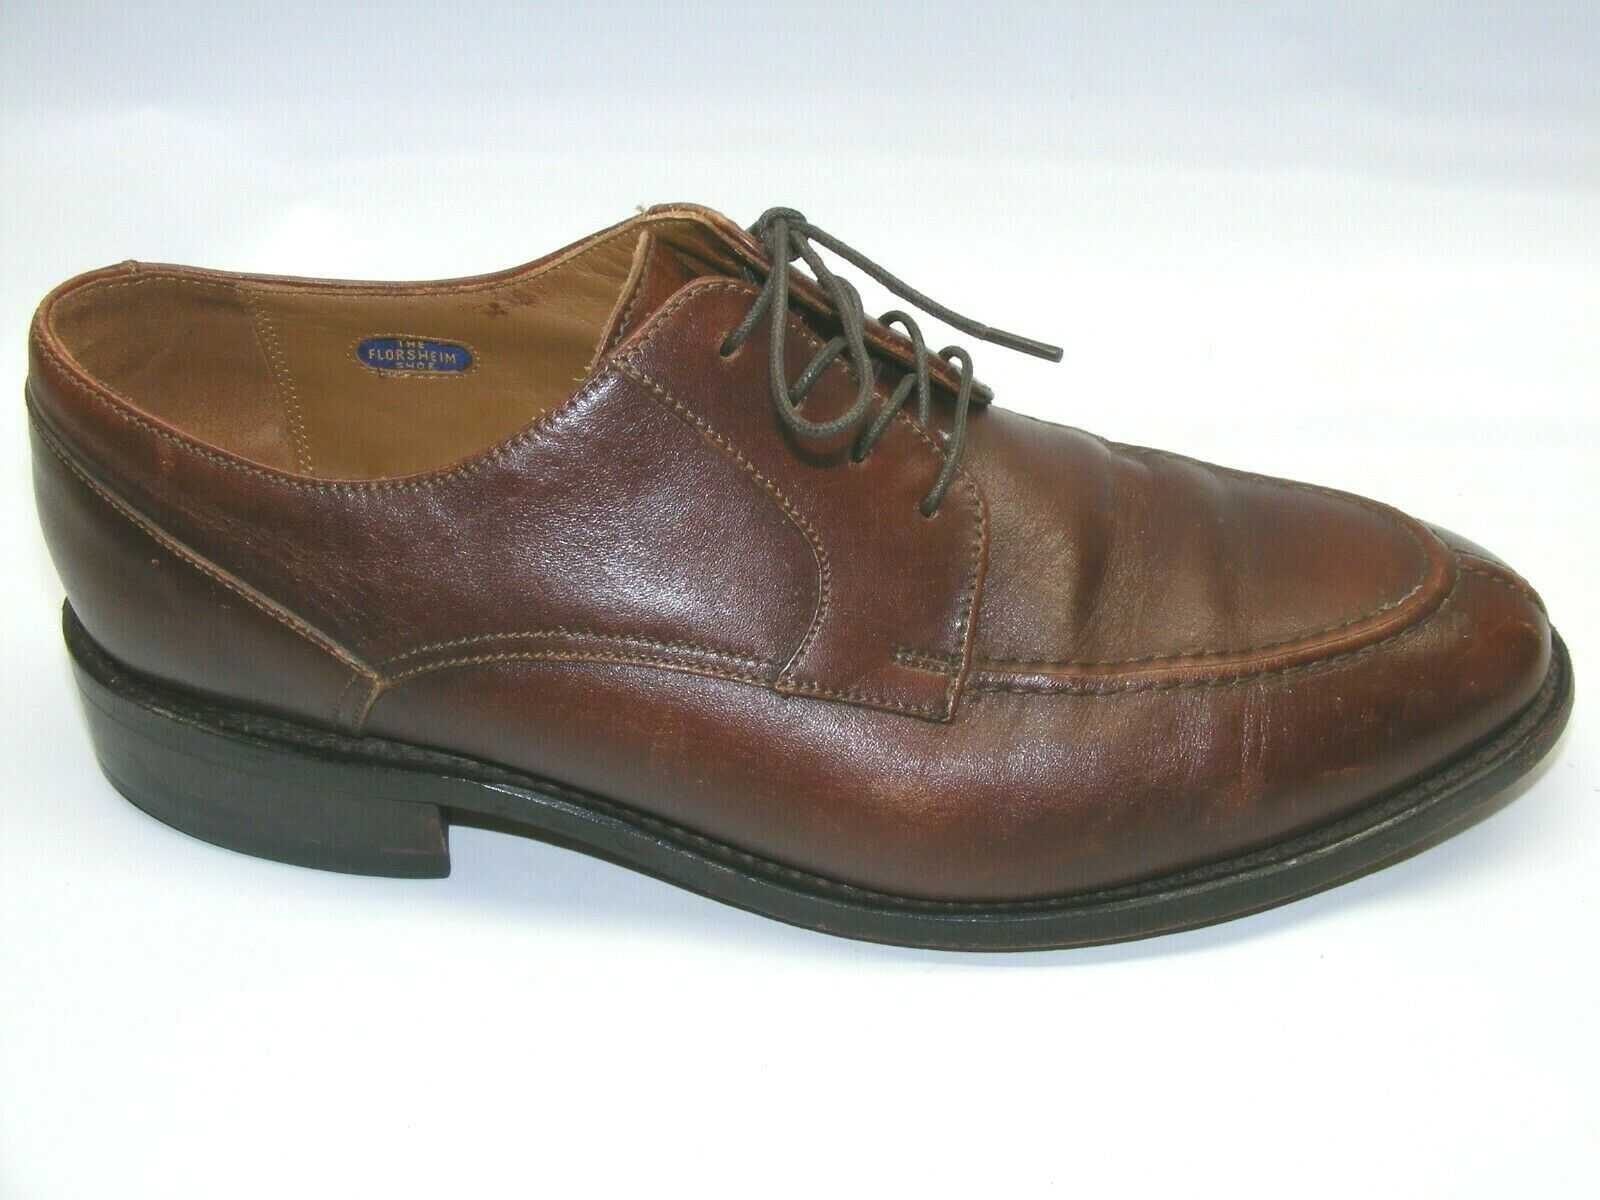 FLORSHEIM Men's Brown Size 9.5 Leather Oxford Dress shoes Split Toe Lace Up